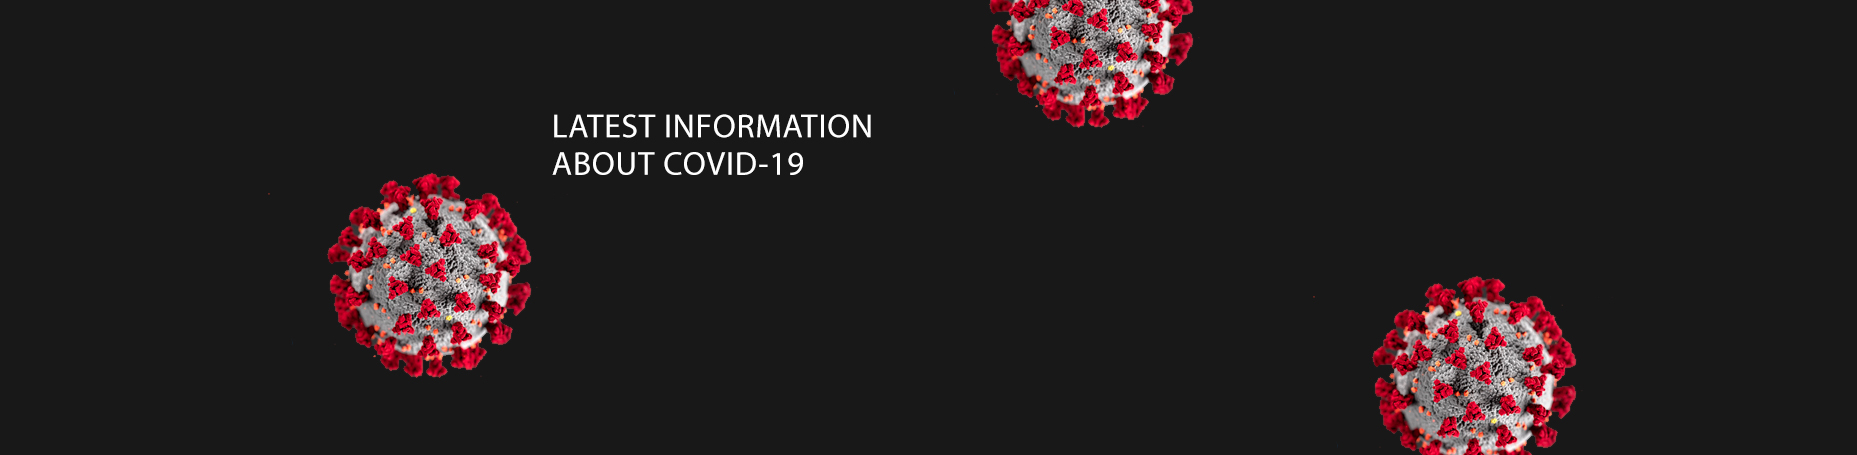 LATEST INFORMATION ABOUT COVID-19